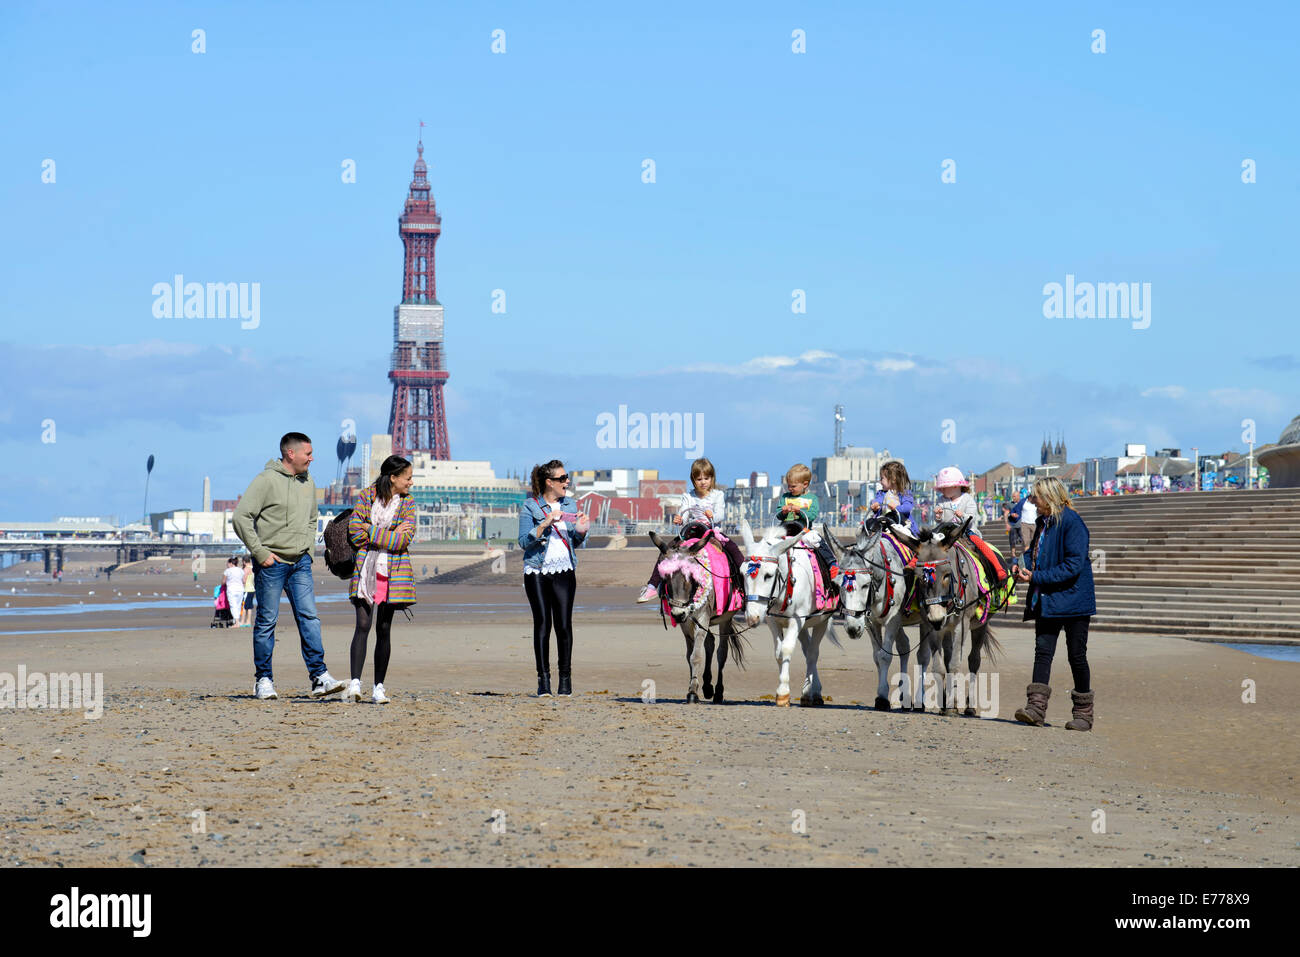 Children enjoying traditional donkey rides on Blackpool beach with iconic Blackpool Tower in the background Stock Photo